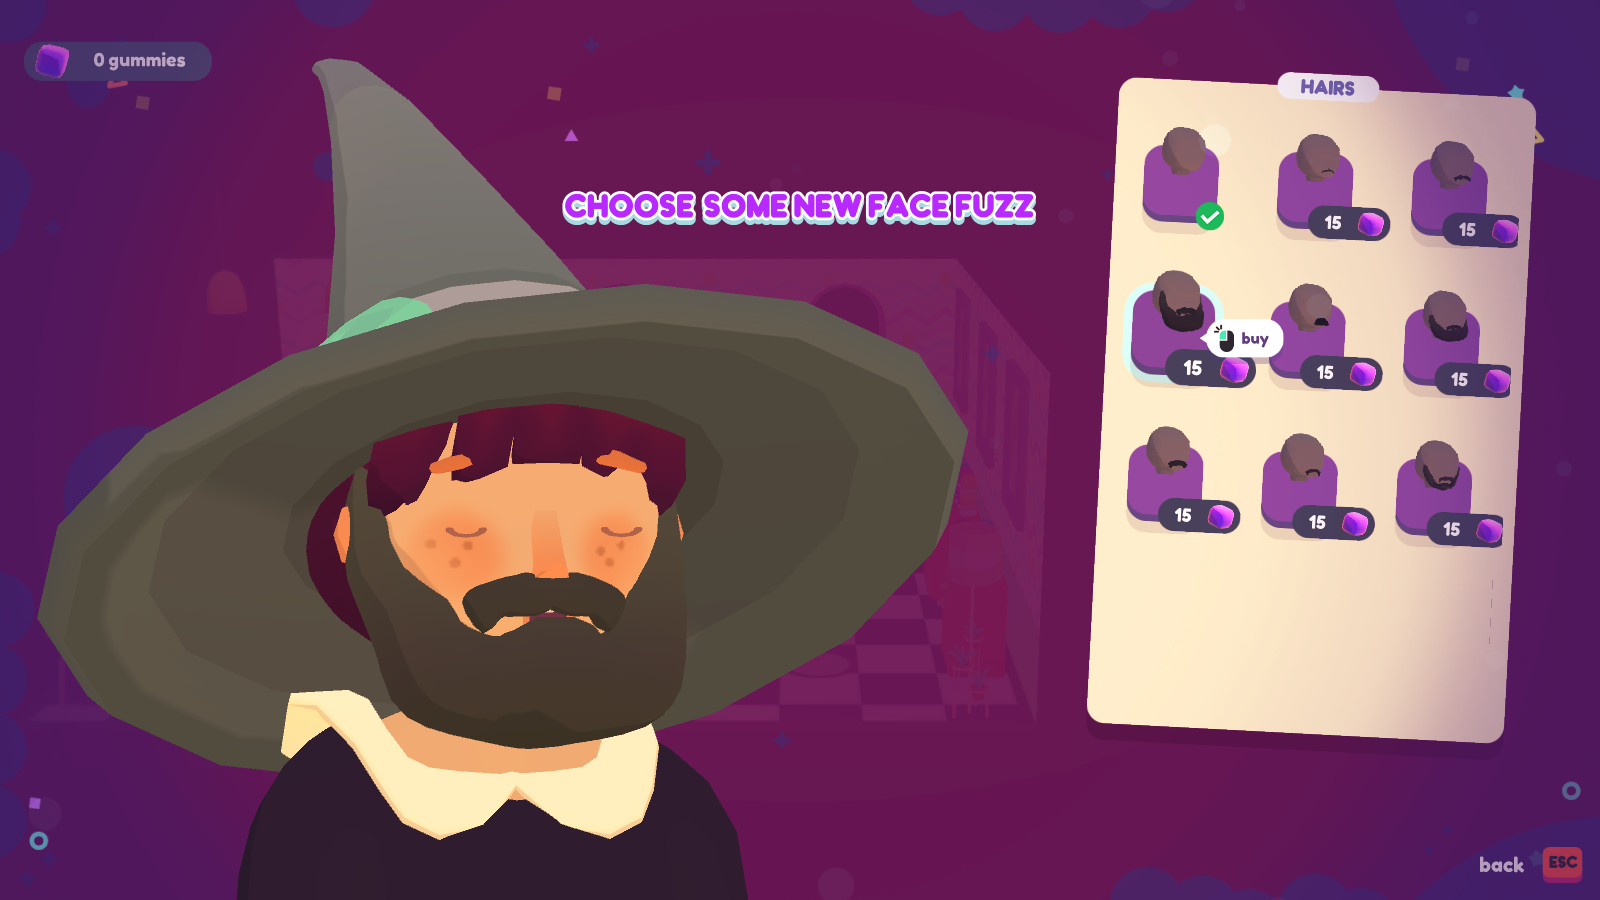 A beard and a witch hat.